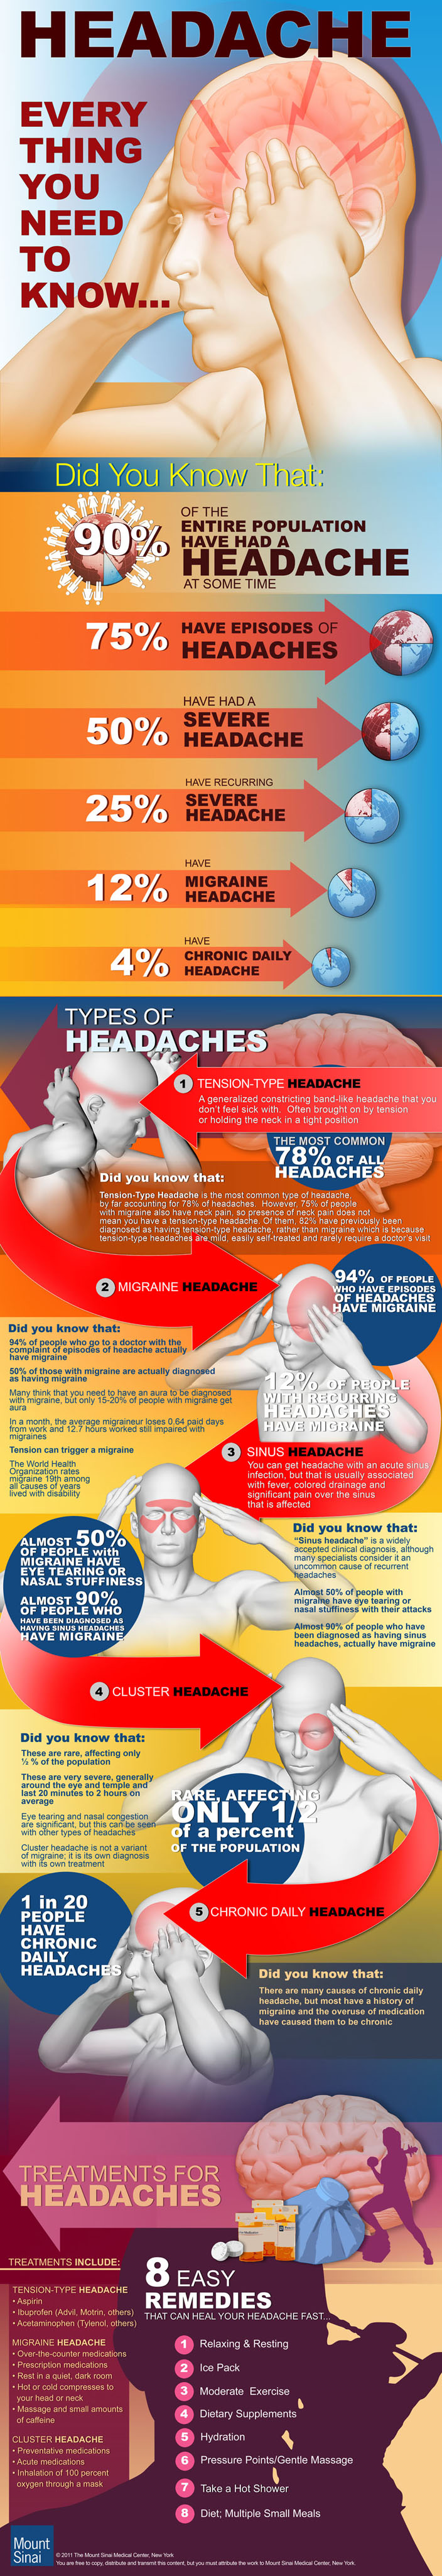 Headaches: Everything You Need To Know